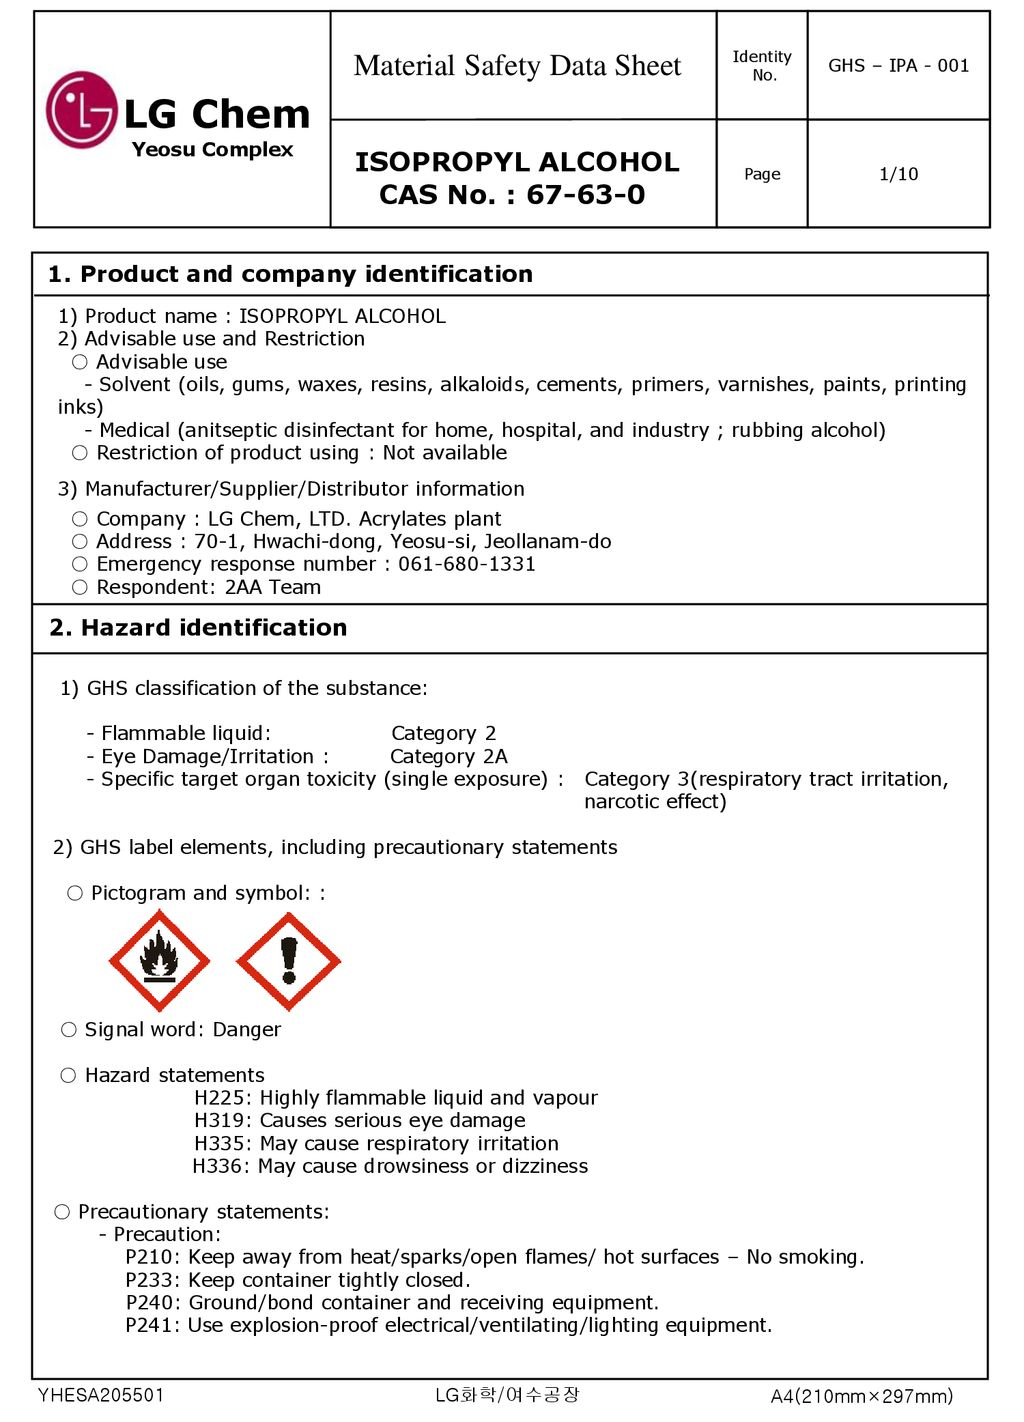 Material Safety Data Sheet - ppt download